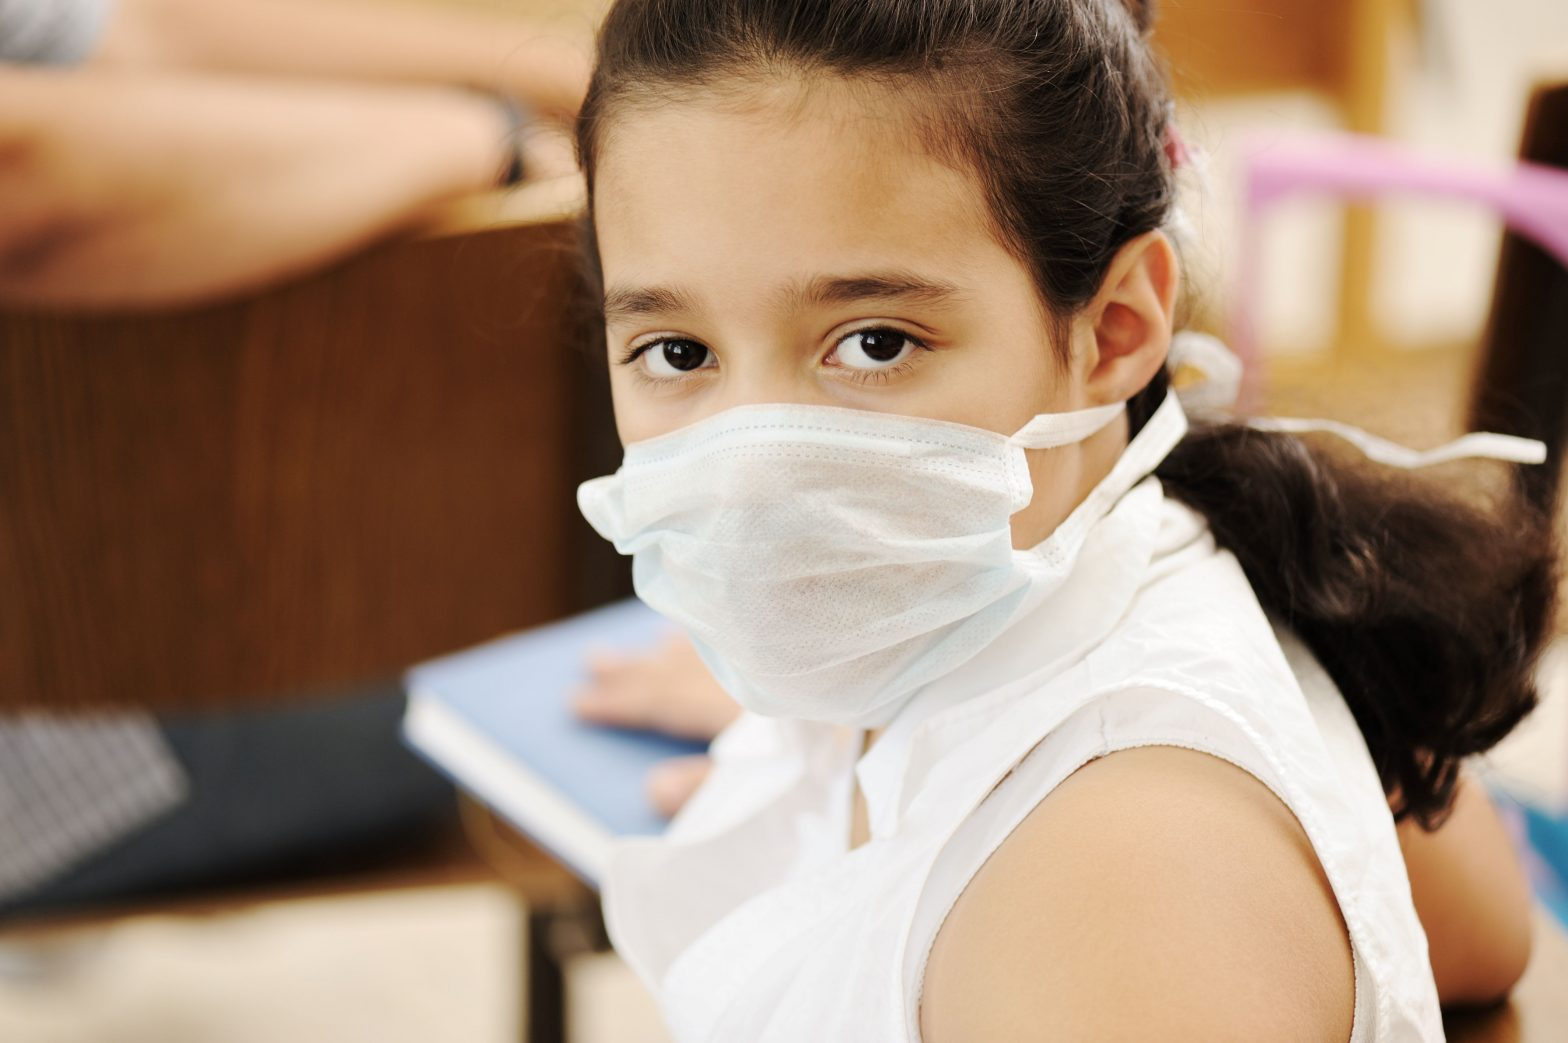 young girl wearing surgical mask